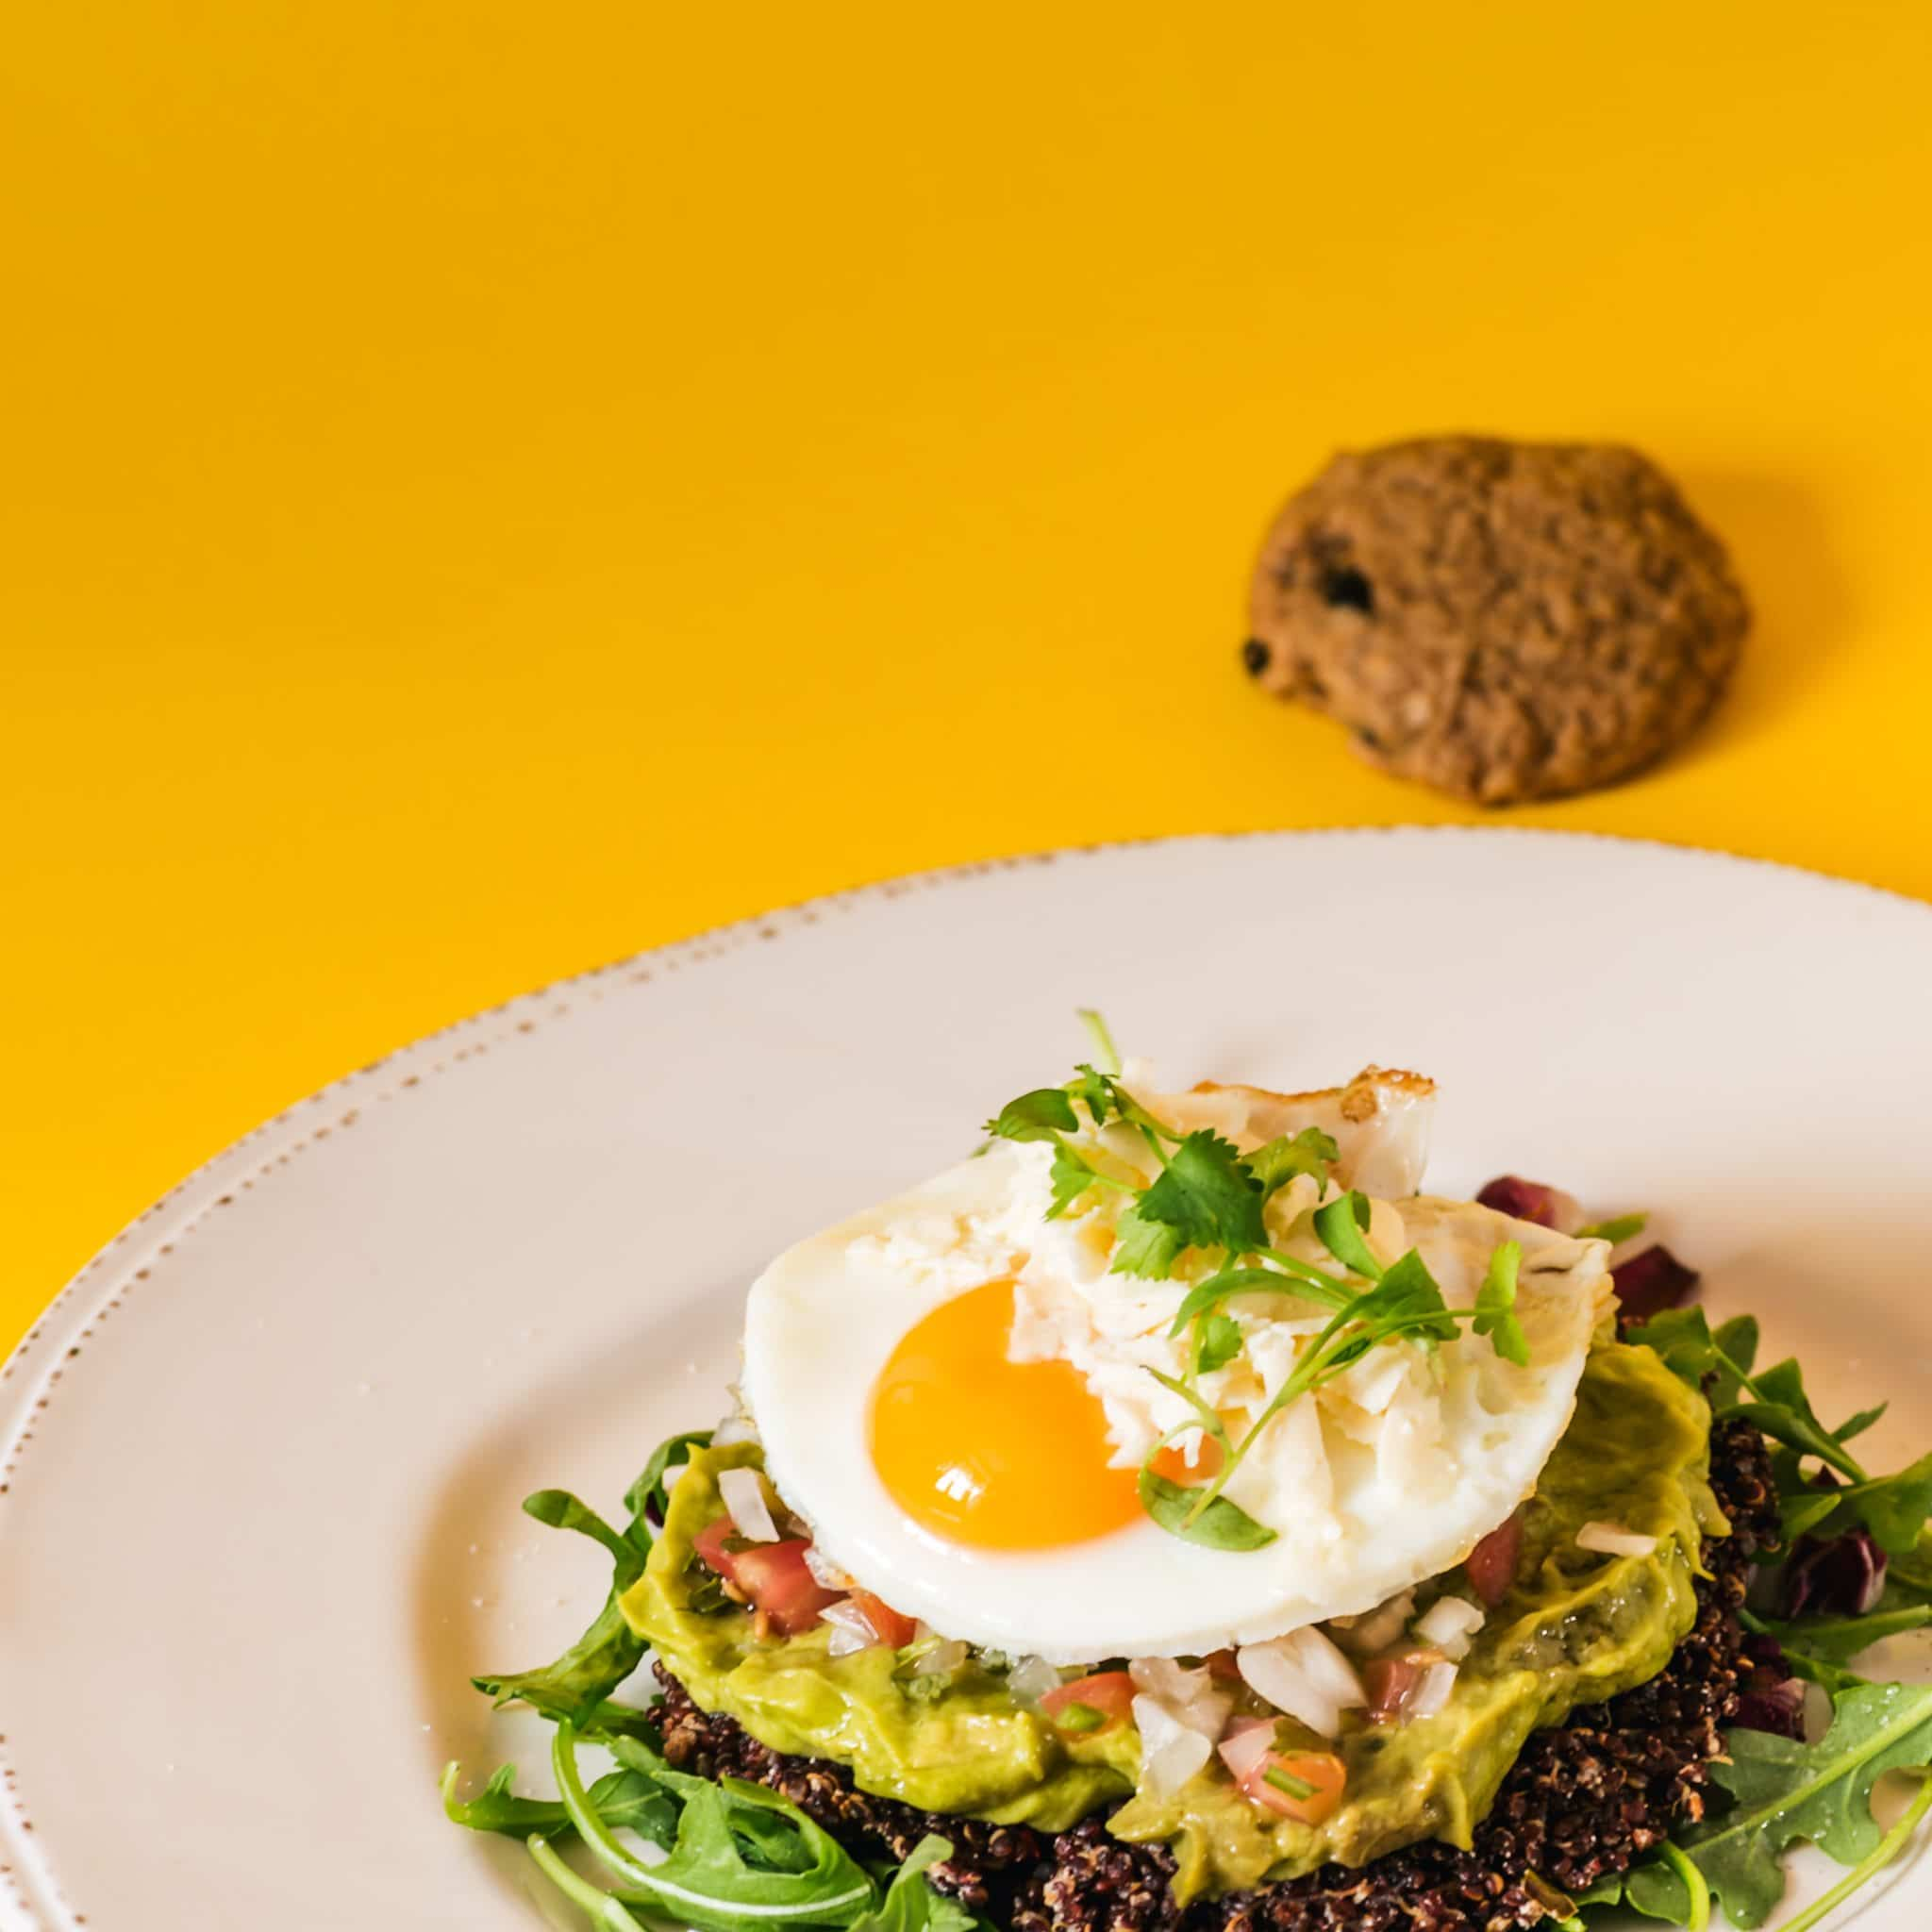 Eggs with quinoa, guacamole and picadillo